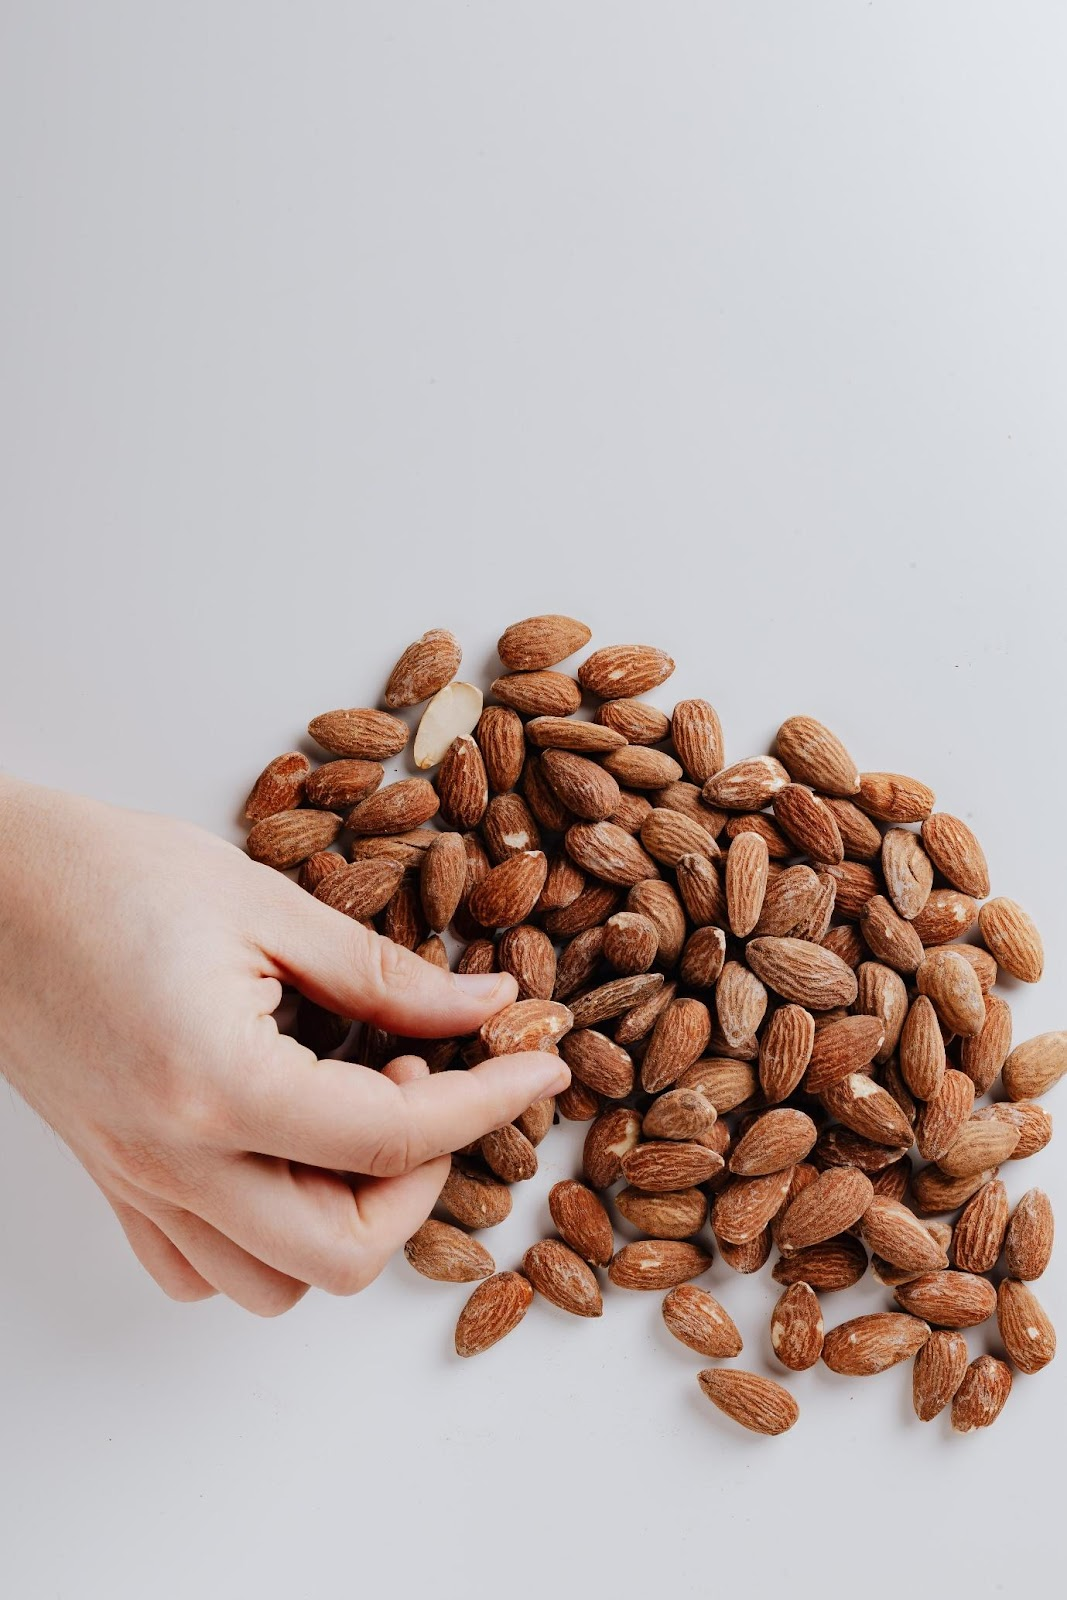 A person holding a handful of coffee beans  Description automatically generated with medium confidence